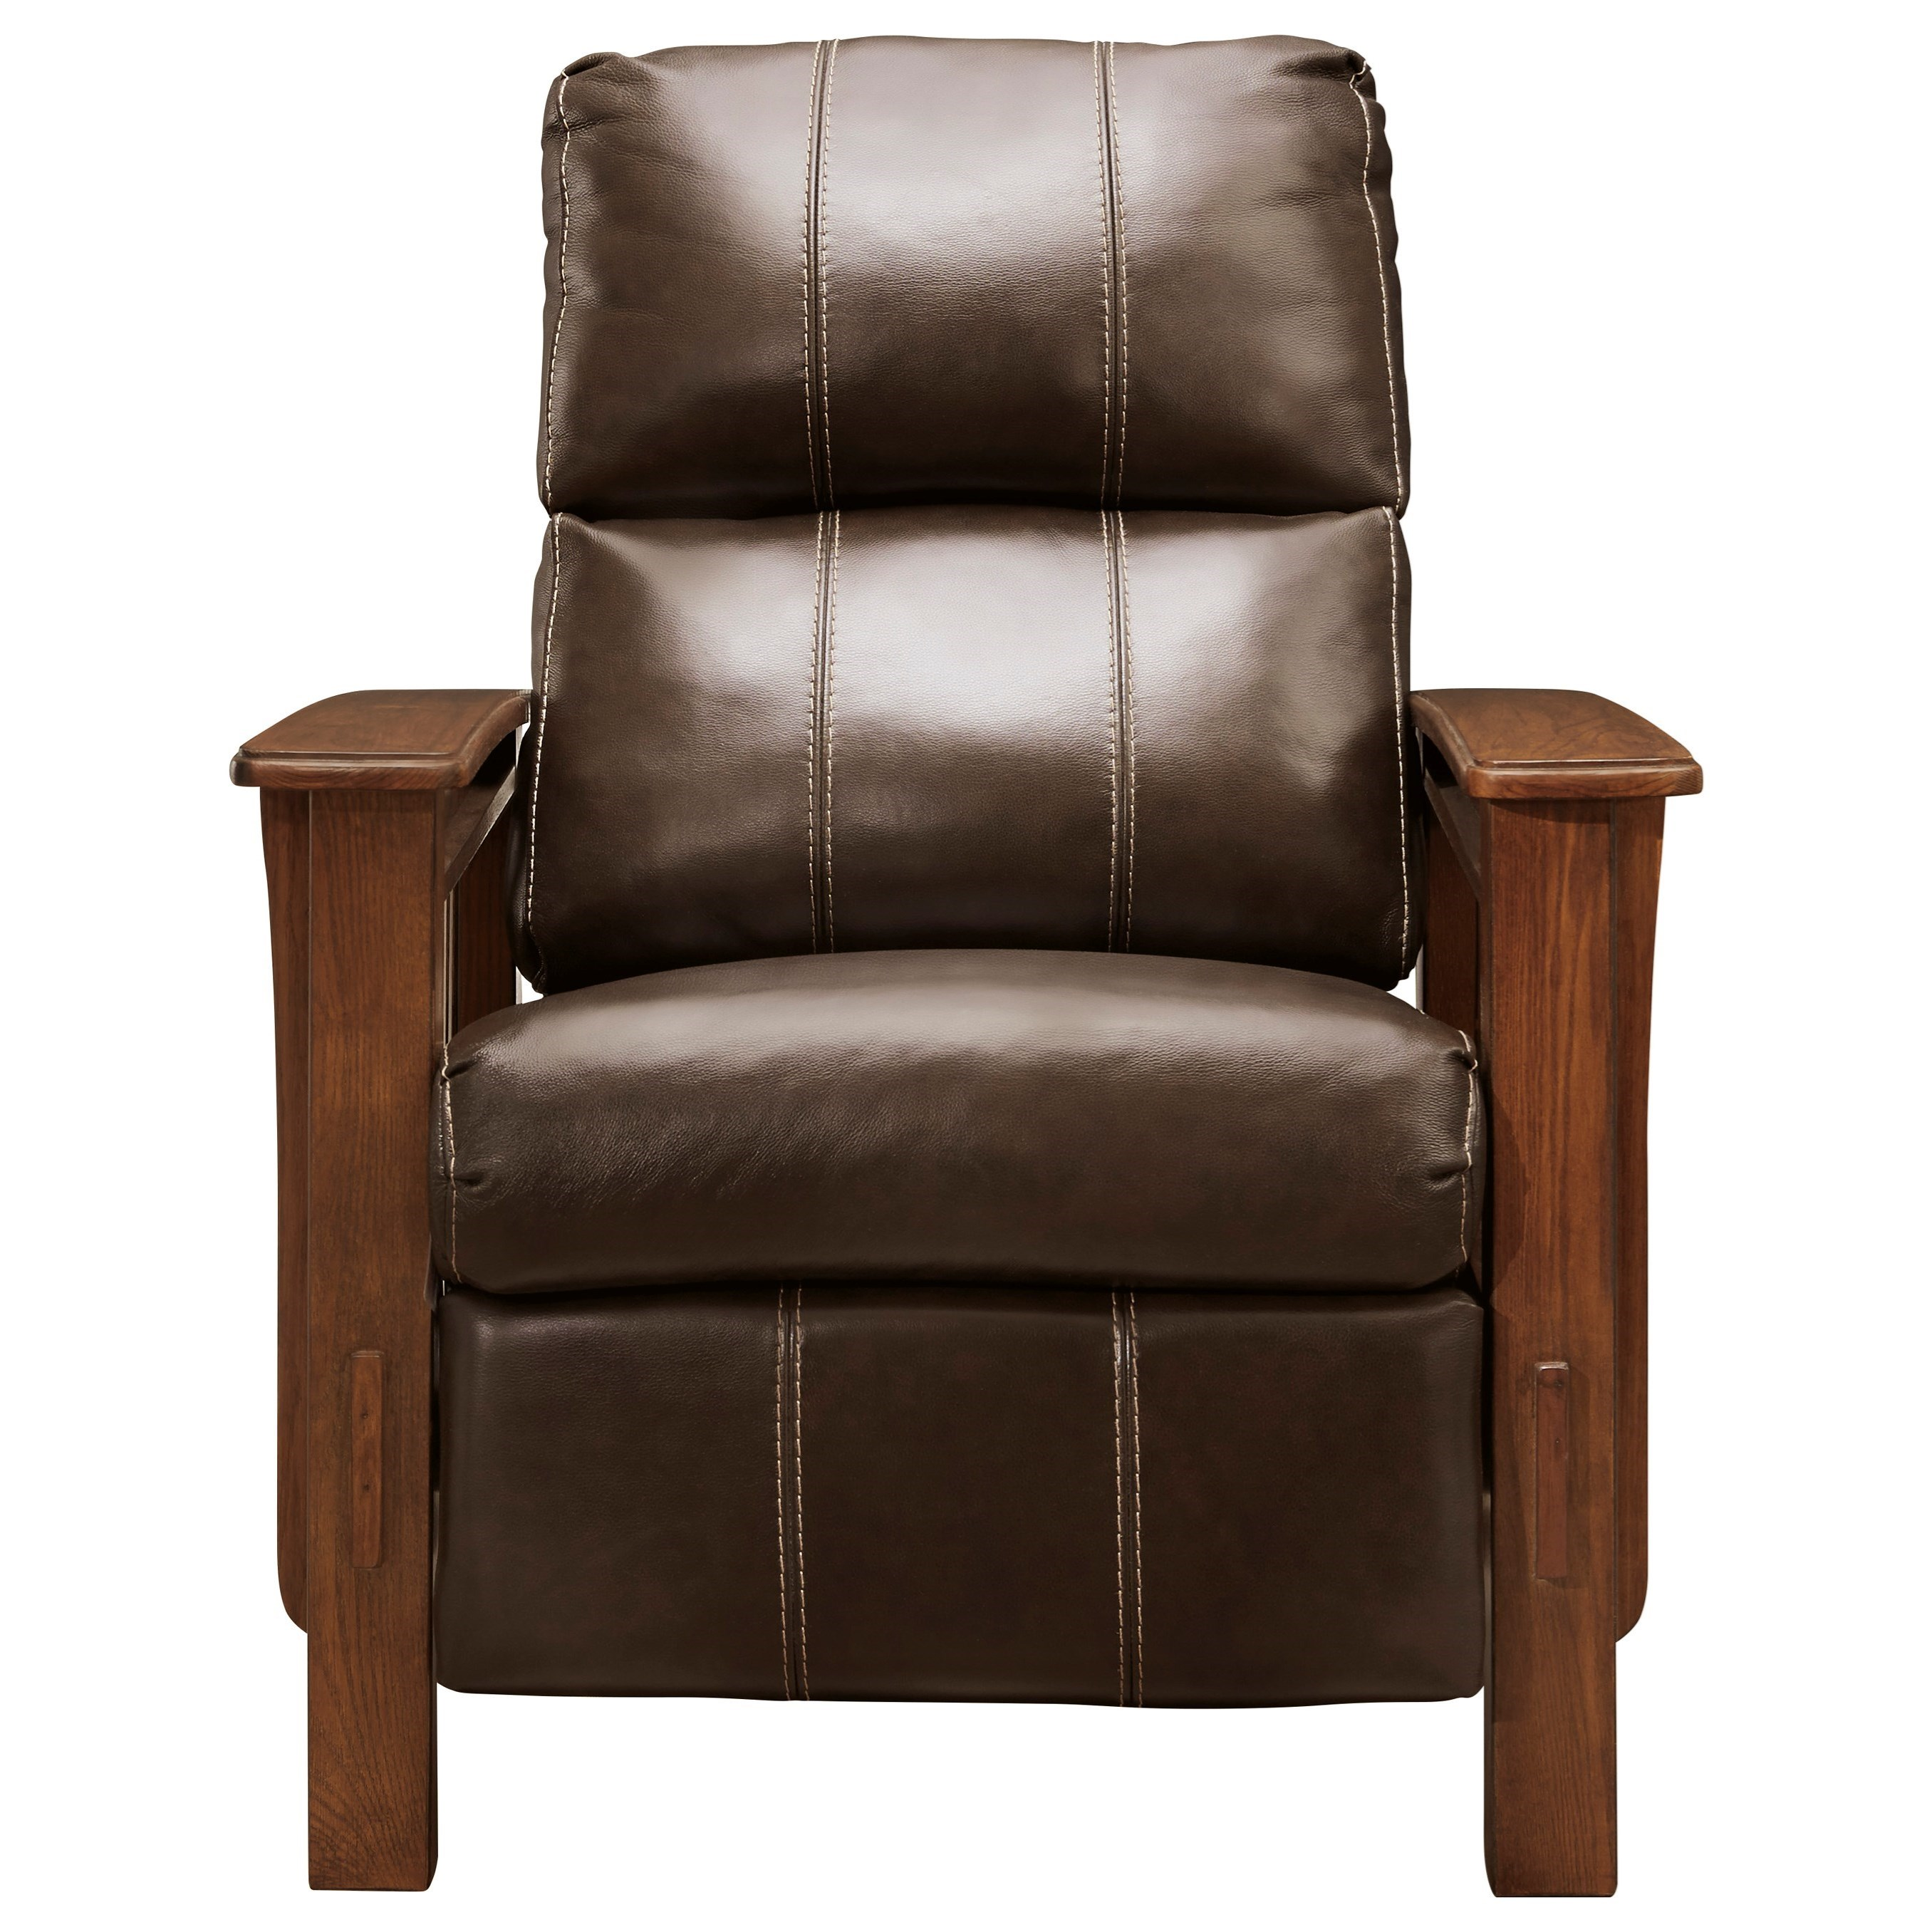 Cowlitz High Leg Recliner by Ashley (Signature Design) at Johnny Janosik